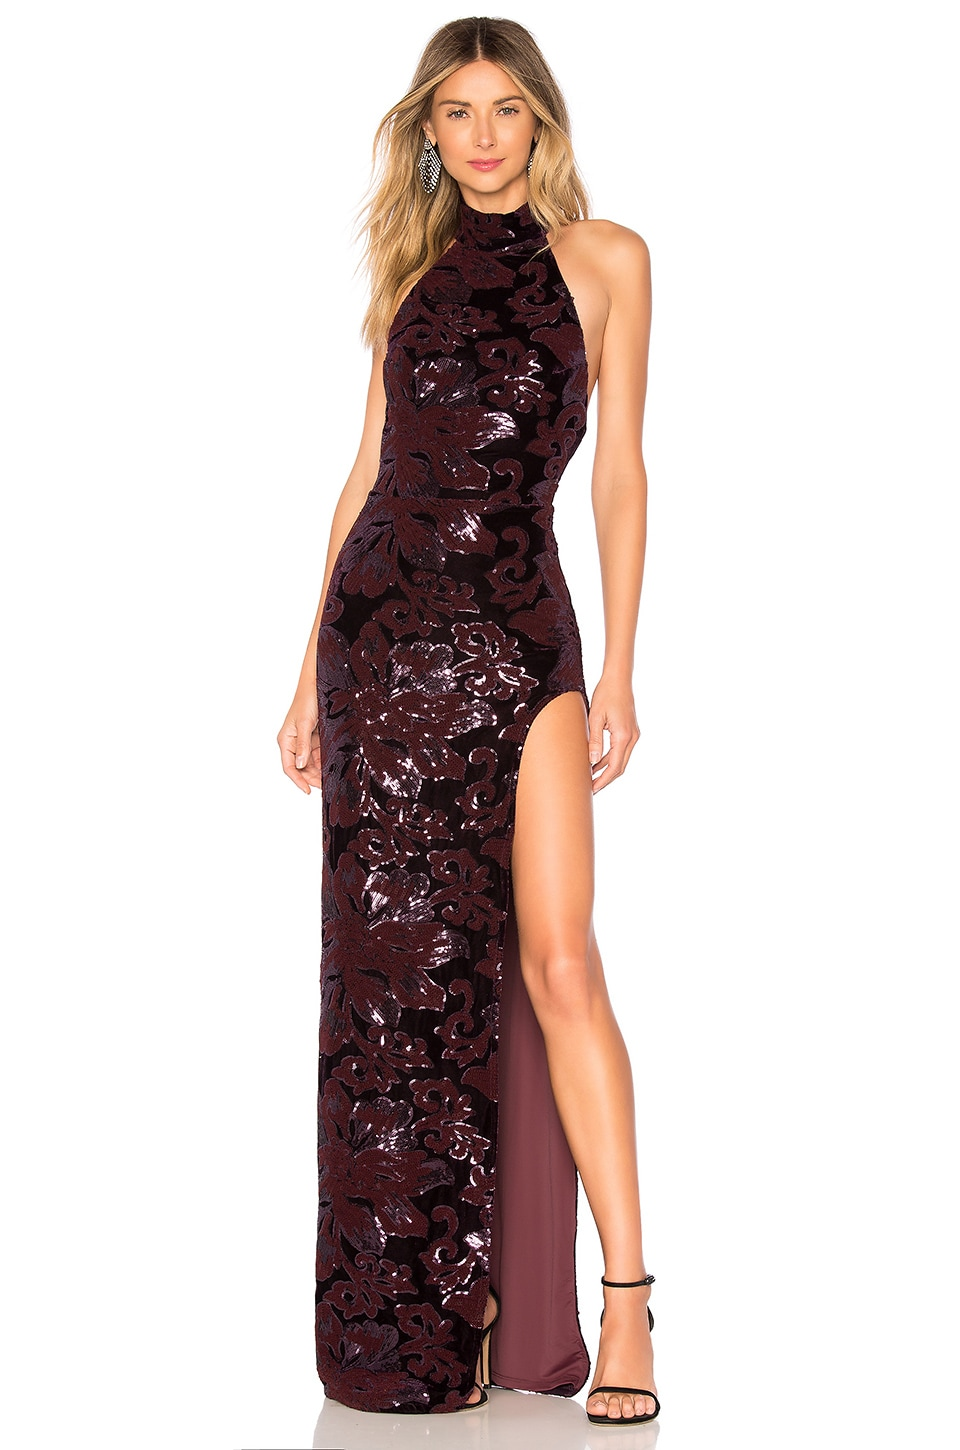 Michael Costello x REVOLVE Penelope Gown in Purple Floral